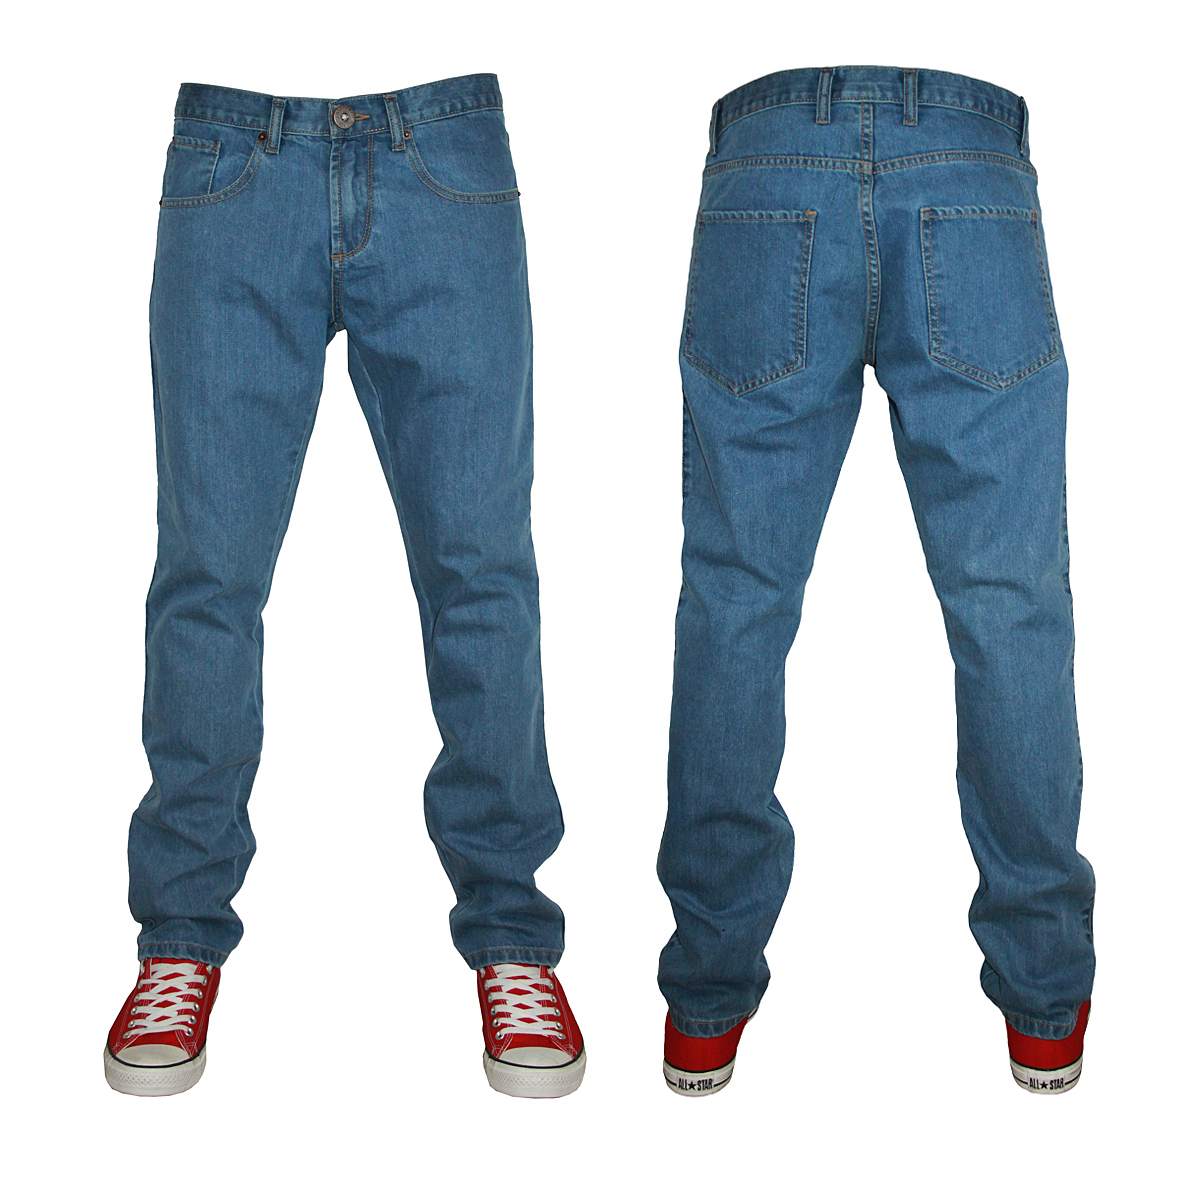 m nner conspiracy jeans c603590vb skinny fit jeans alle taillen beingr en ebay. Black Bedroom Furniture Sets. Home Design Ideas